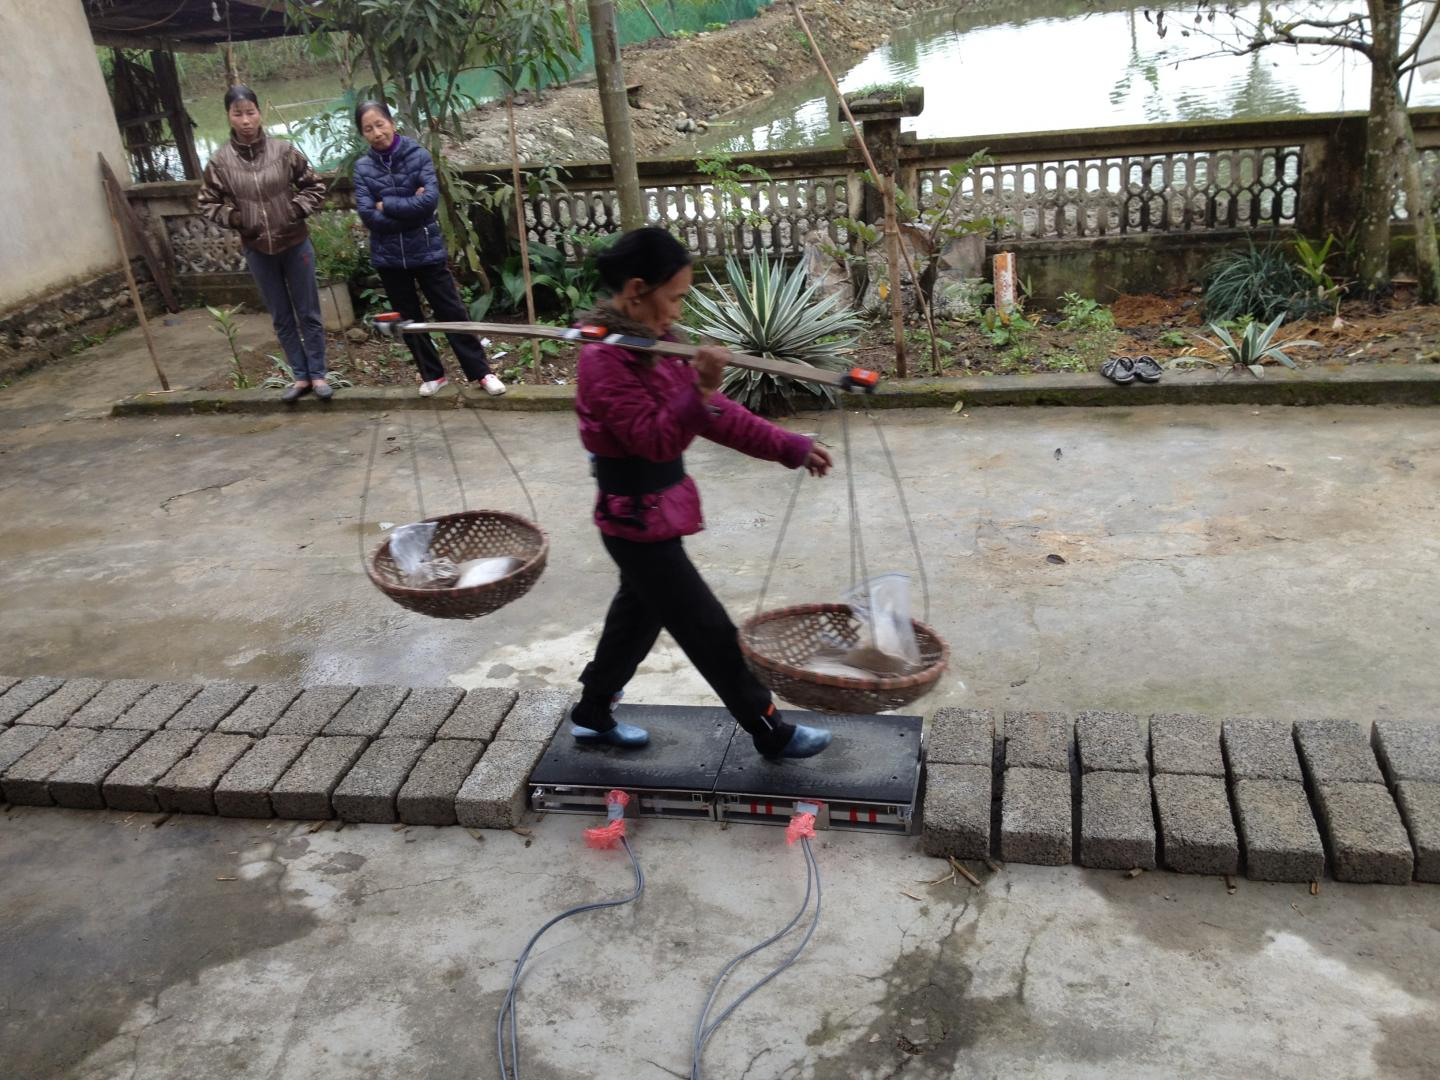 A Woman Carrying a Heavy Load on a Flexible Bamboo Pole